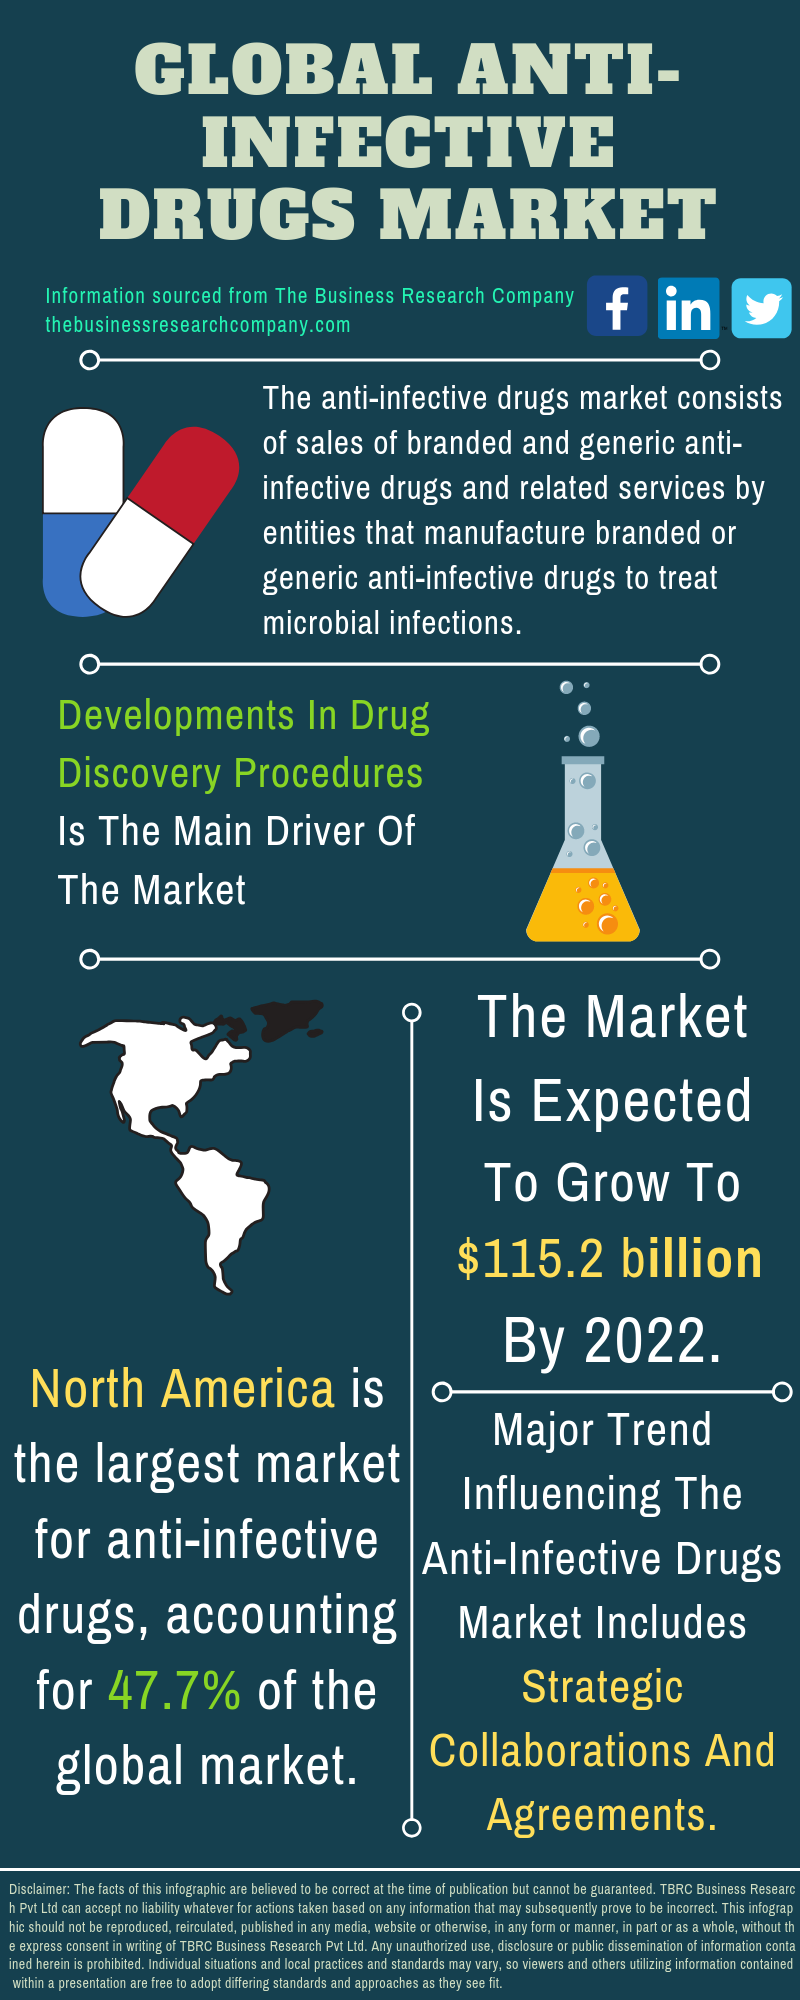 Anti-Infective Drugs Market